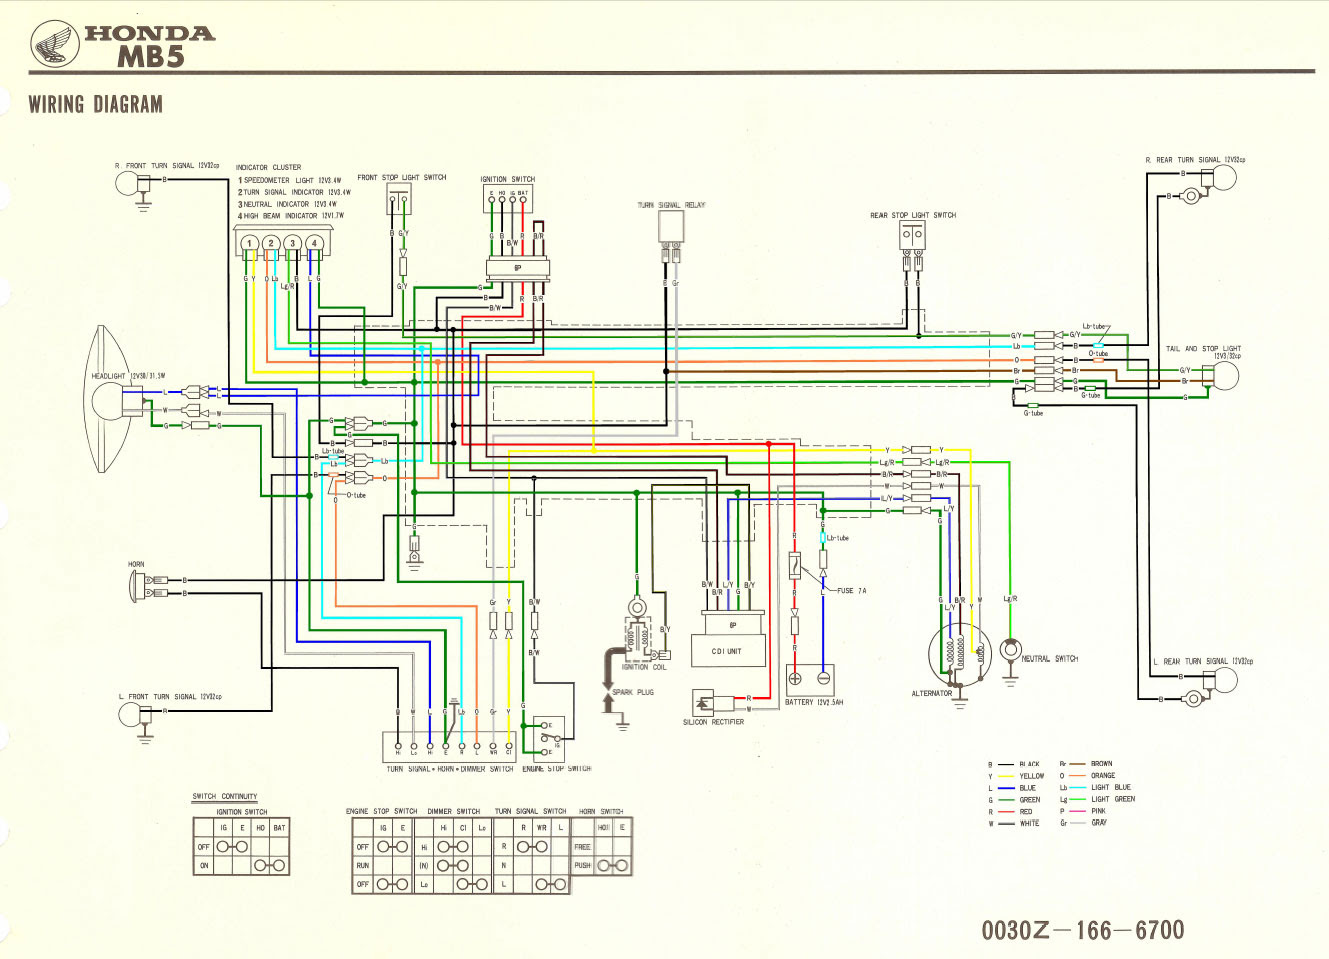 Diagram Honda Mb5 Wiring Diagram Full Version Hd Quality Wiring Diagram Diadiagram2 Discountdellapiastrella It